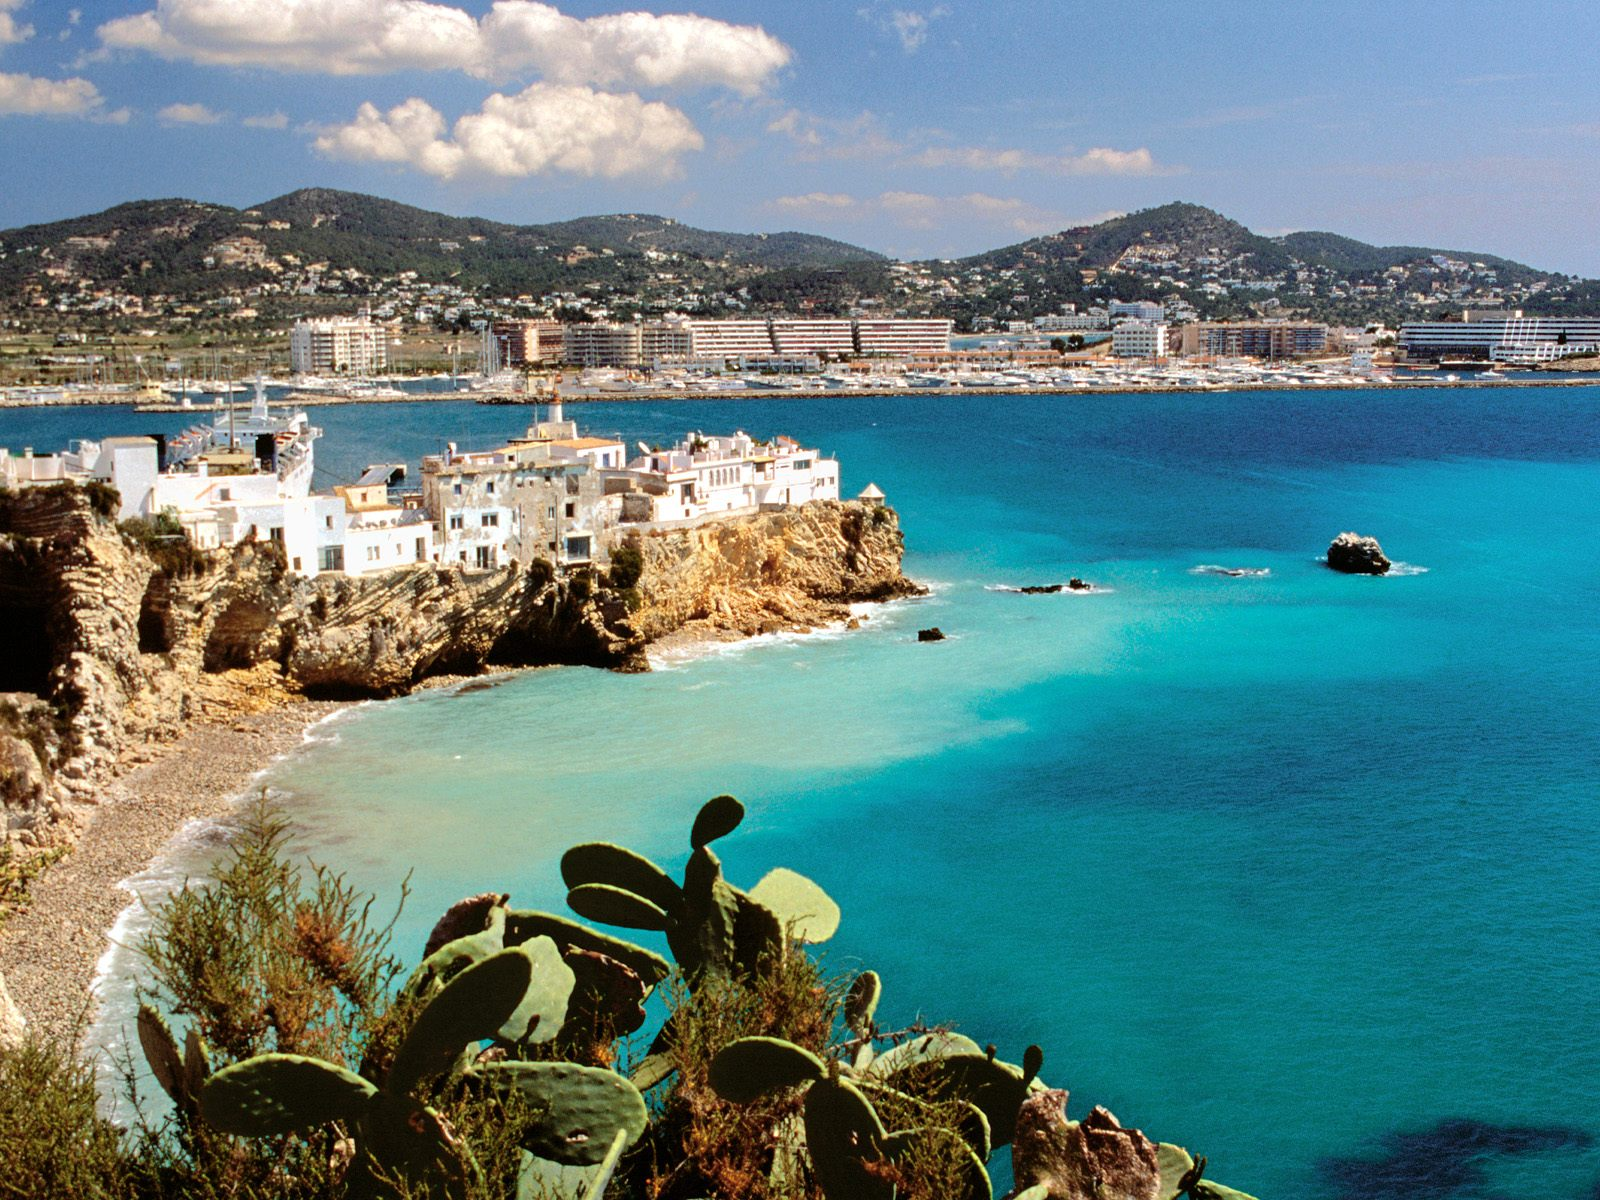 ibiza spain travel guide and travel info tourist destinations. Black Bedroom Furniture Sets. Home Design Ideas